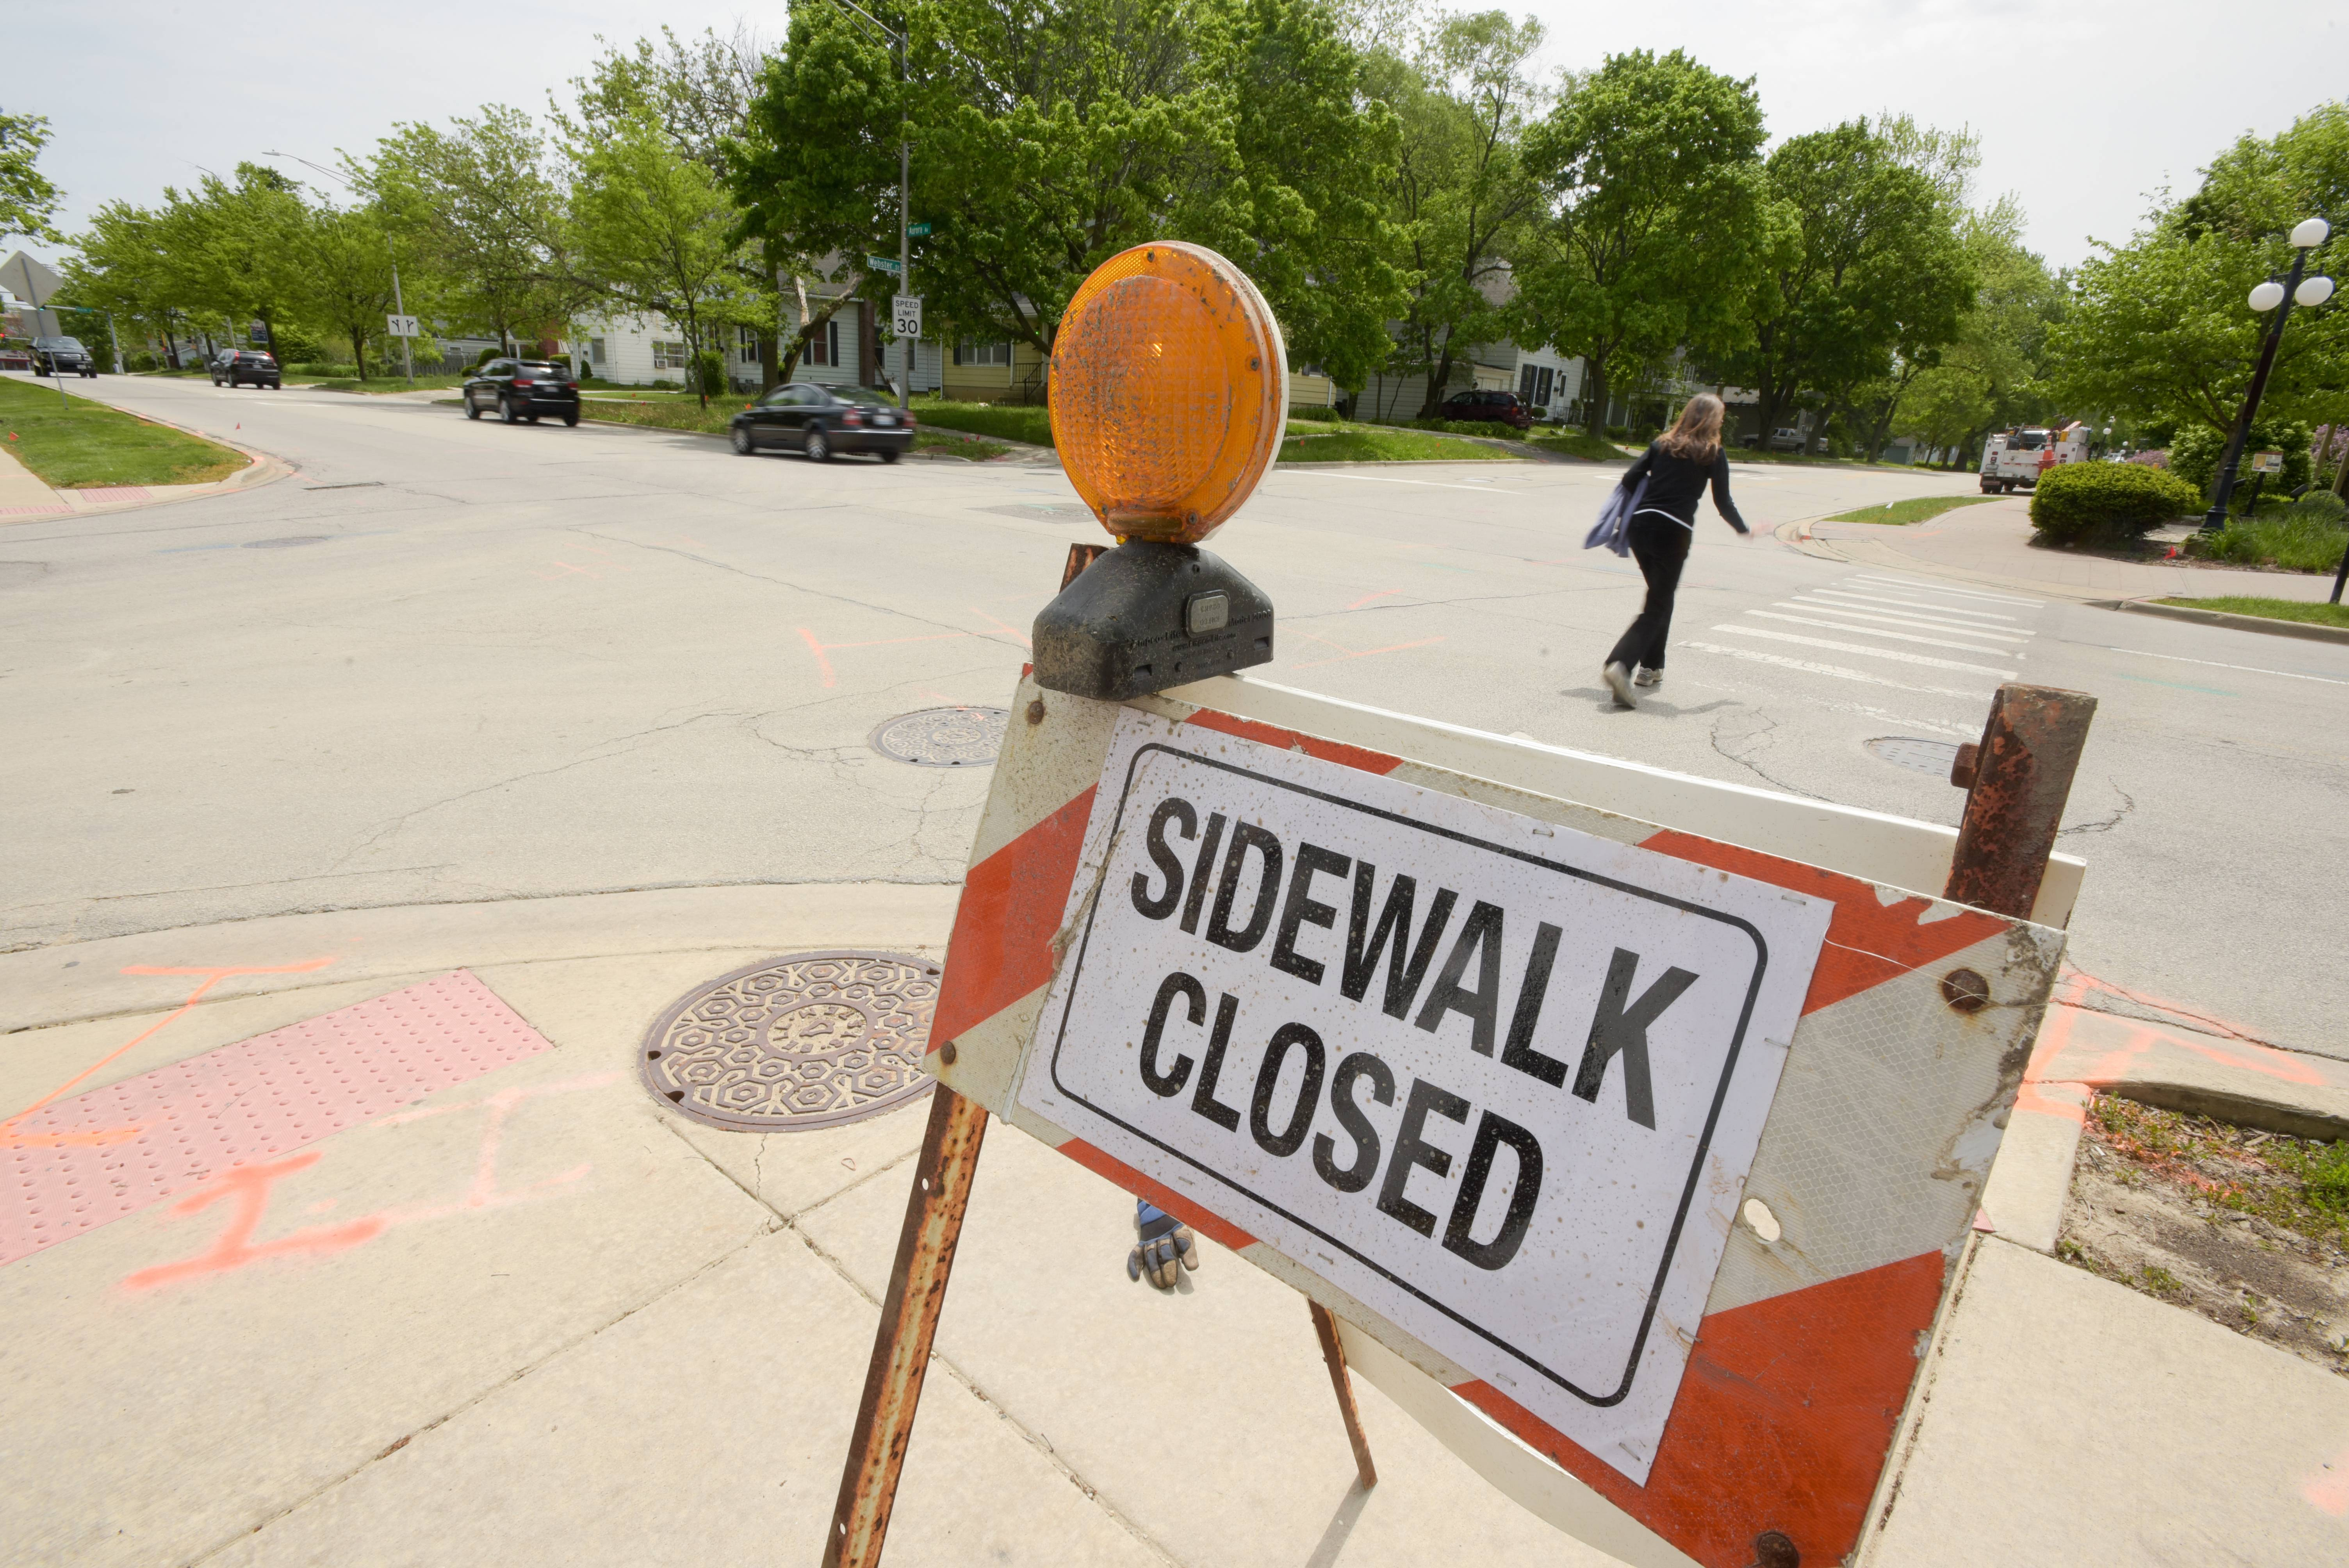 Work to install a traffic signal at the intersection of Aurora Avenue and Webster Street in downtown Naperville began Monday and is expected to cause lane closures and delays until mid-August.